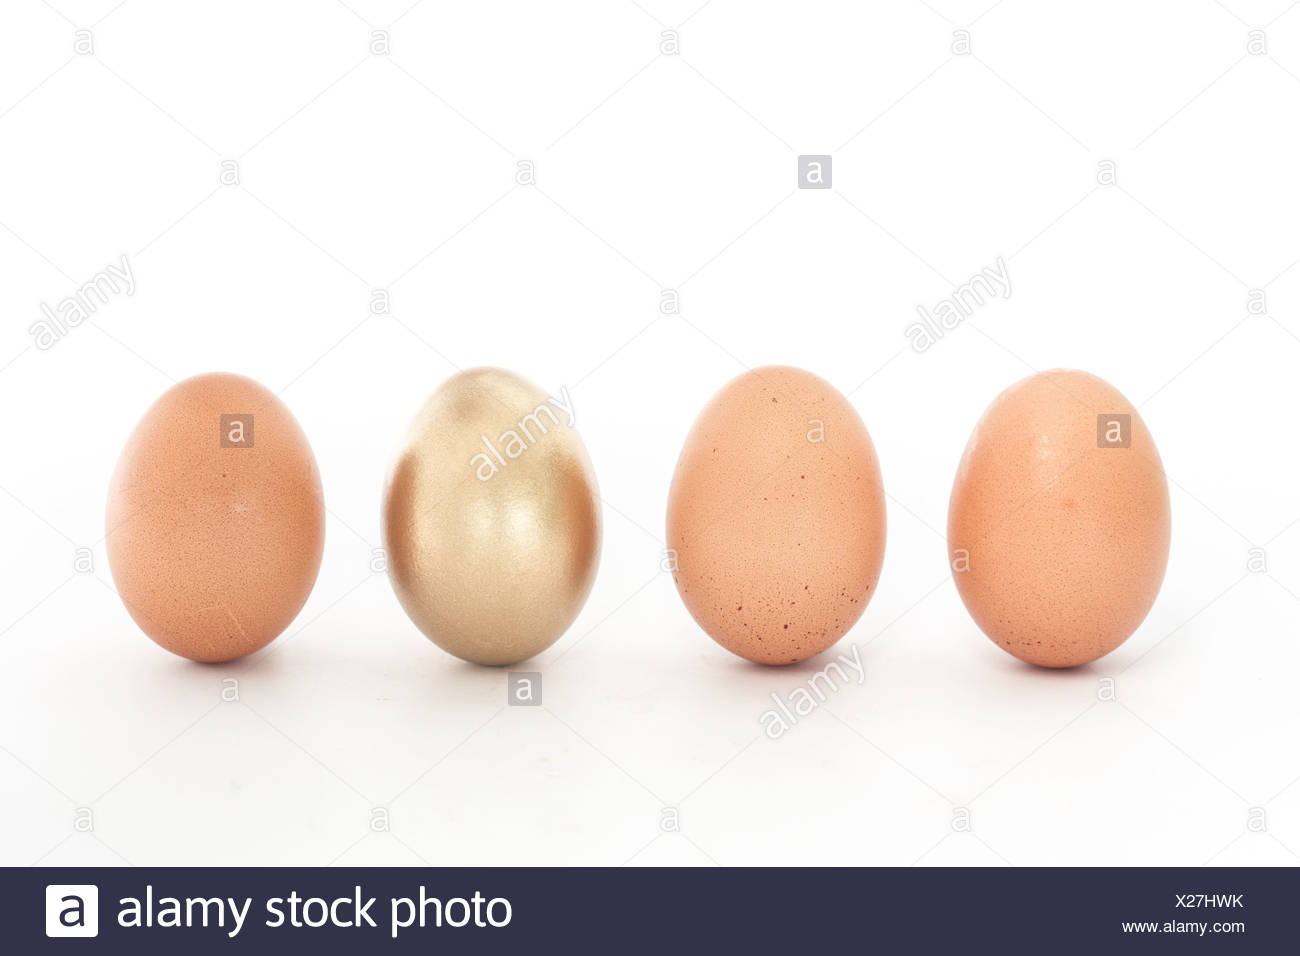 Four eggs in a row with one gold one - Stock Image